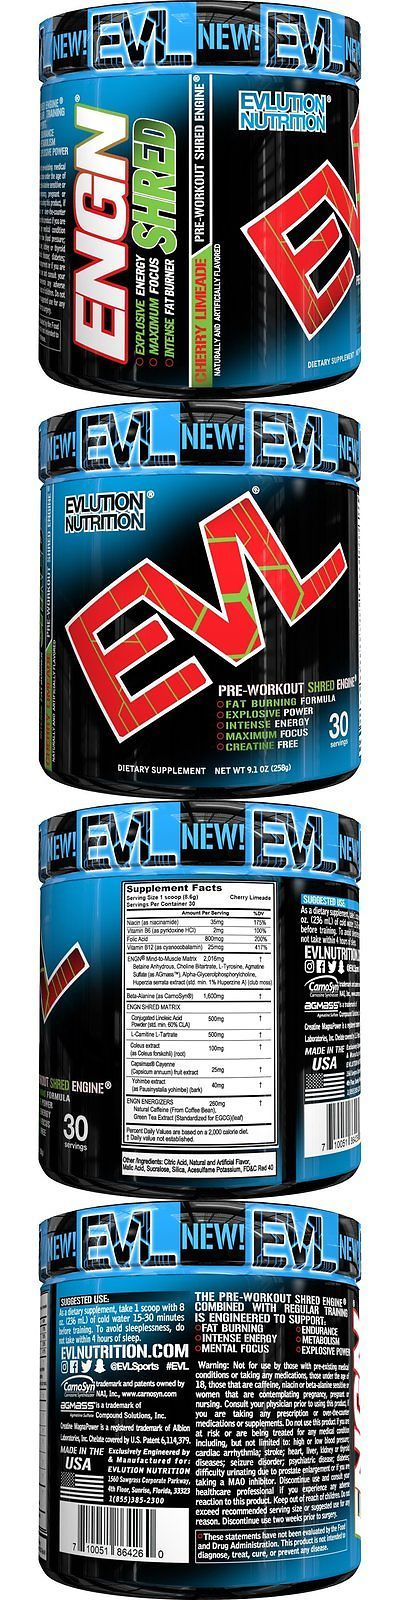 Protein Shakes and Bodybuilding: Evlution Nutrition Engn Shred Pre Workout Thermogenic Fat Burner Powder, Energy, -> BUY IT NOW ONLY: $36.67 on eBay!